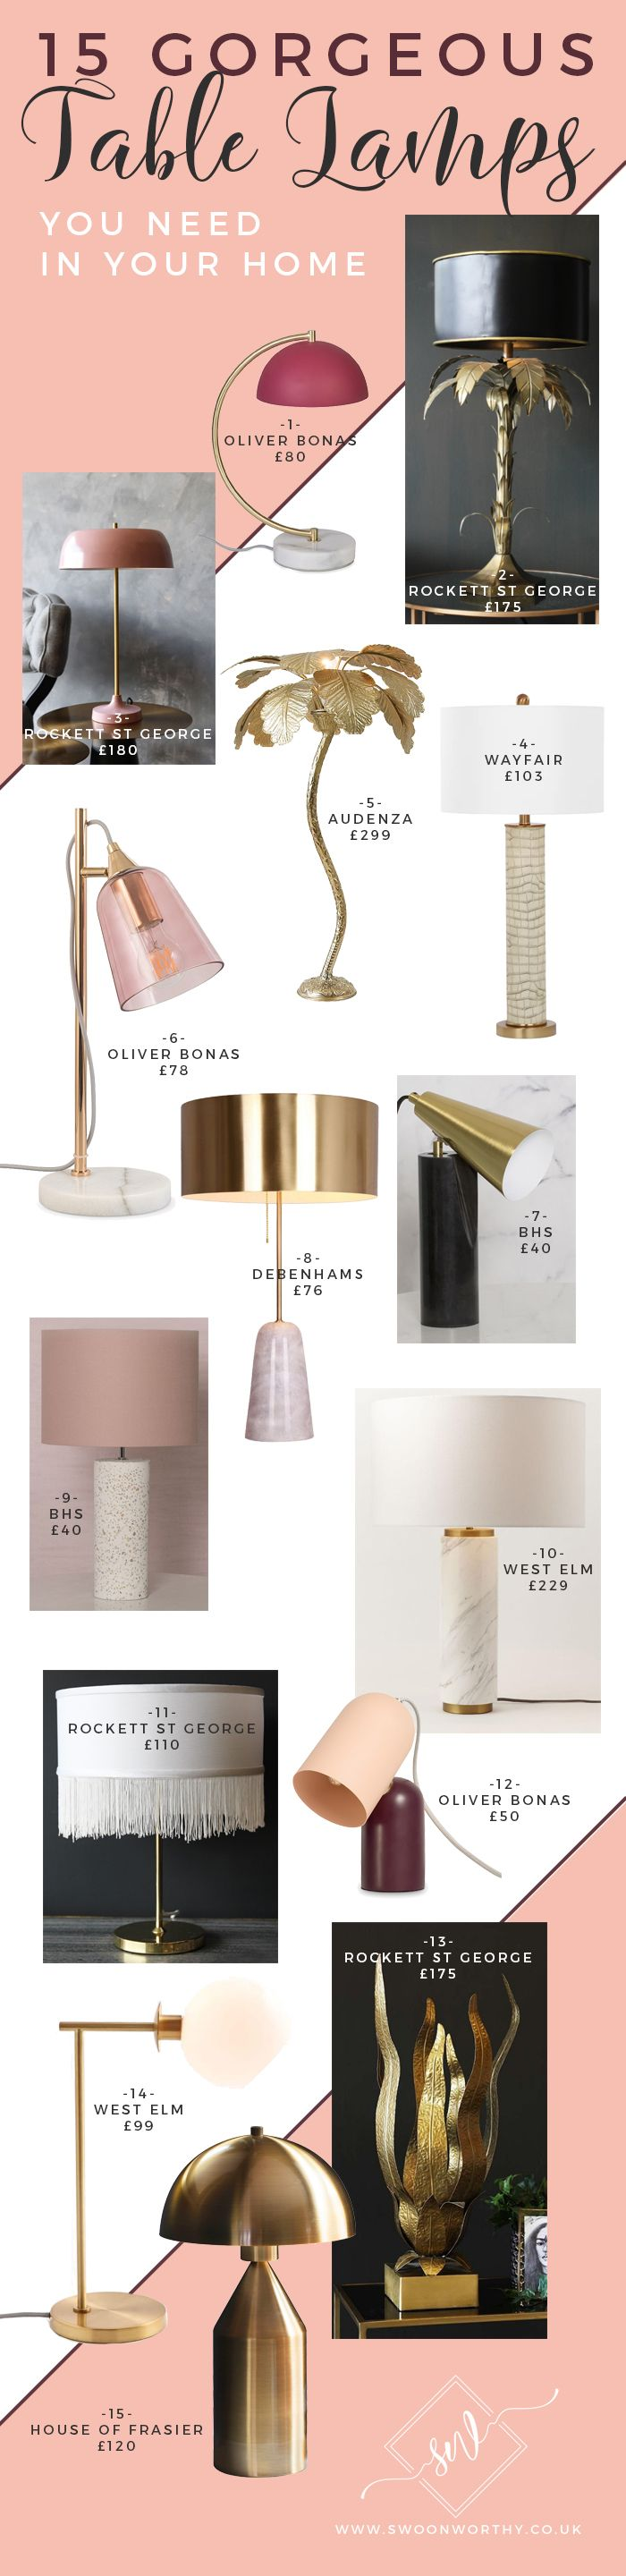 15 Gorgeous Table Lamps You Need In Your Home